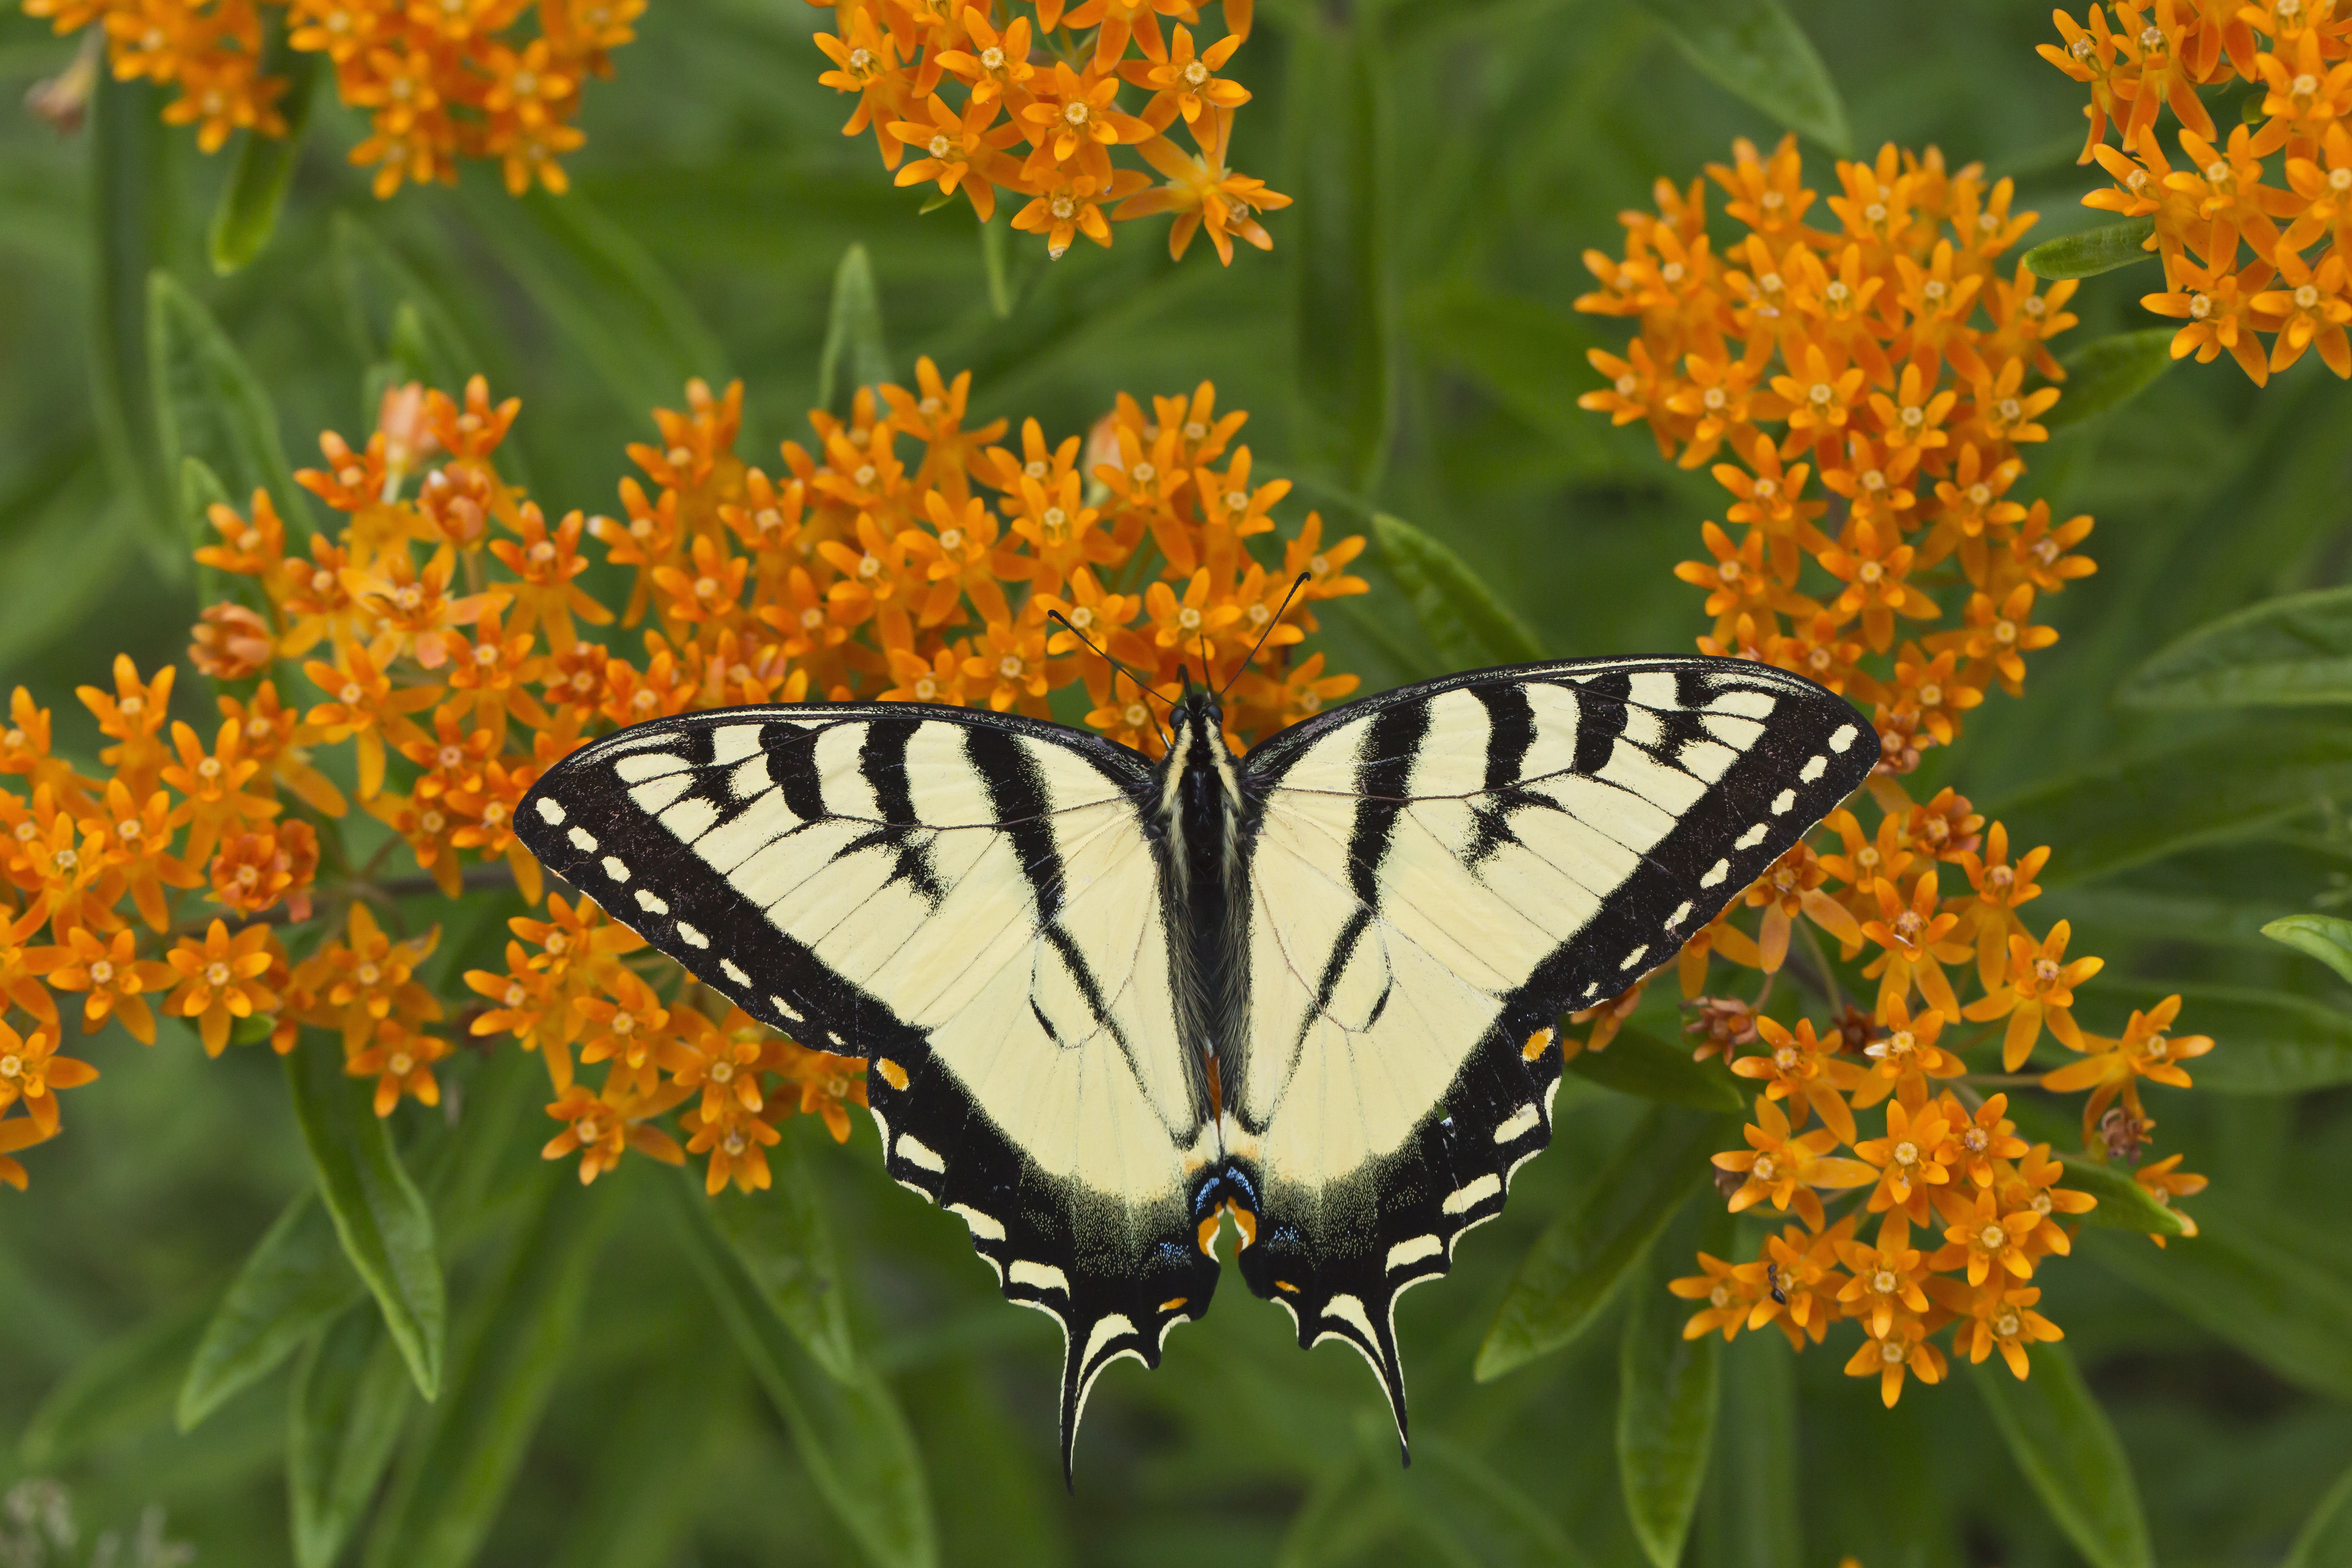 Black swallowtail butterfly on butterfly weed plant.